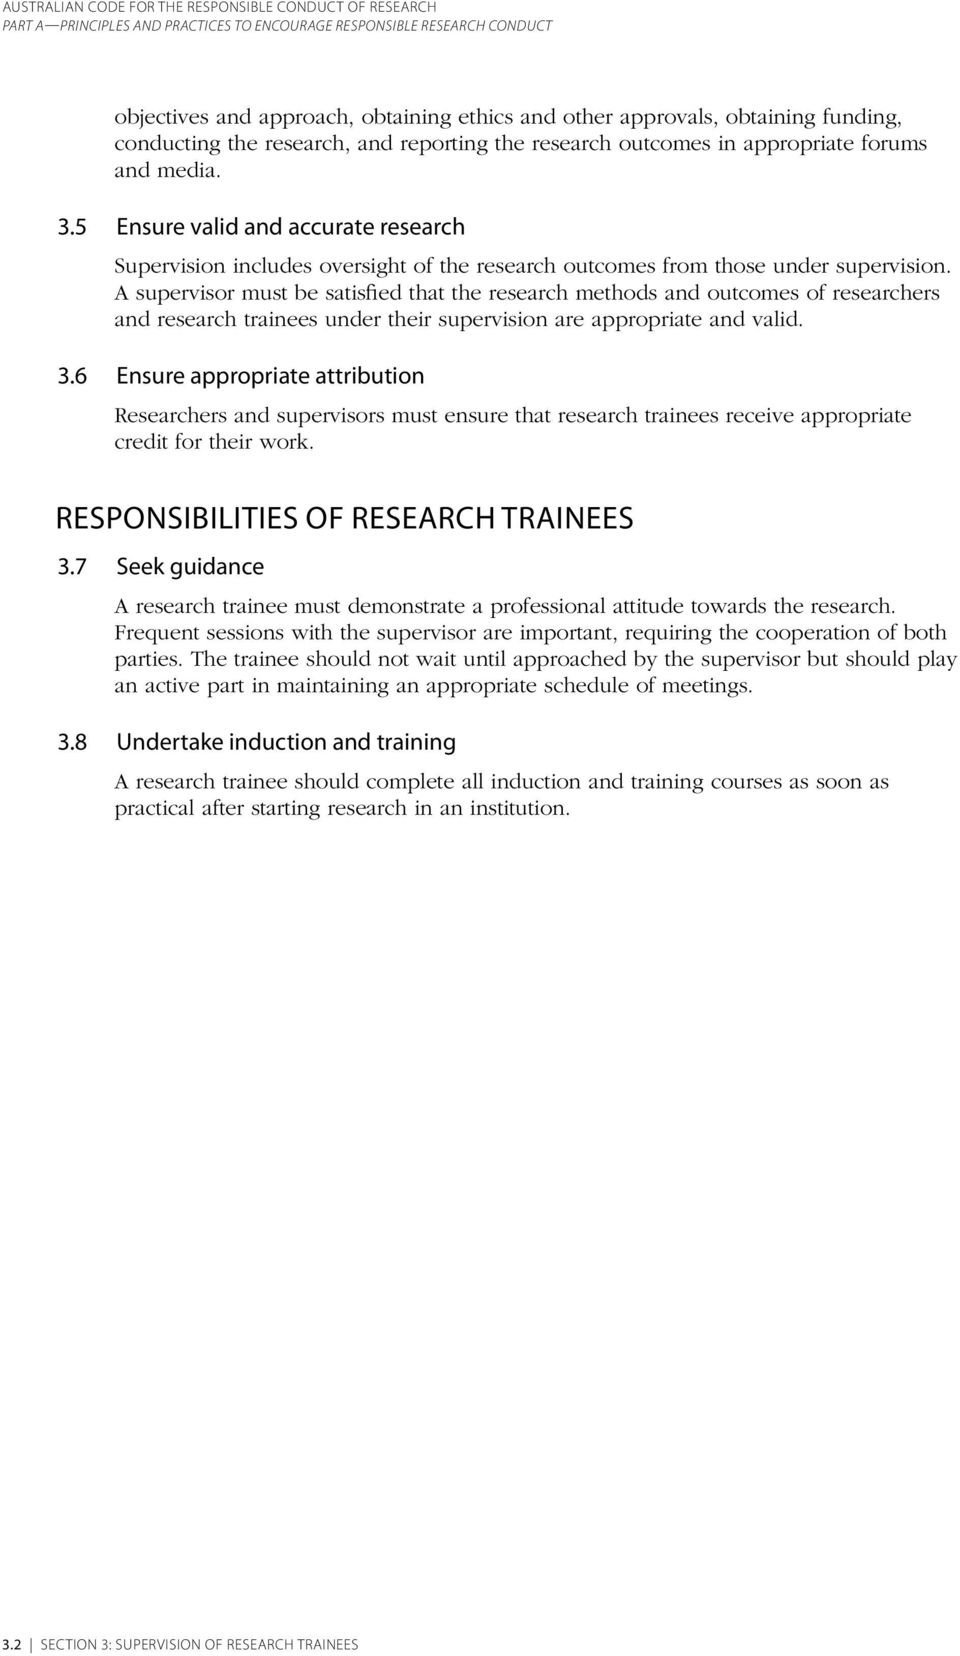 A supervisor must be satisfied that the research methods and outcomes of researchers and research trainees under their supervision are appropriate and valid. 3.